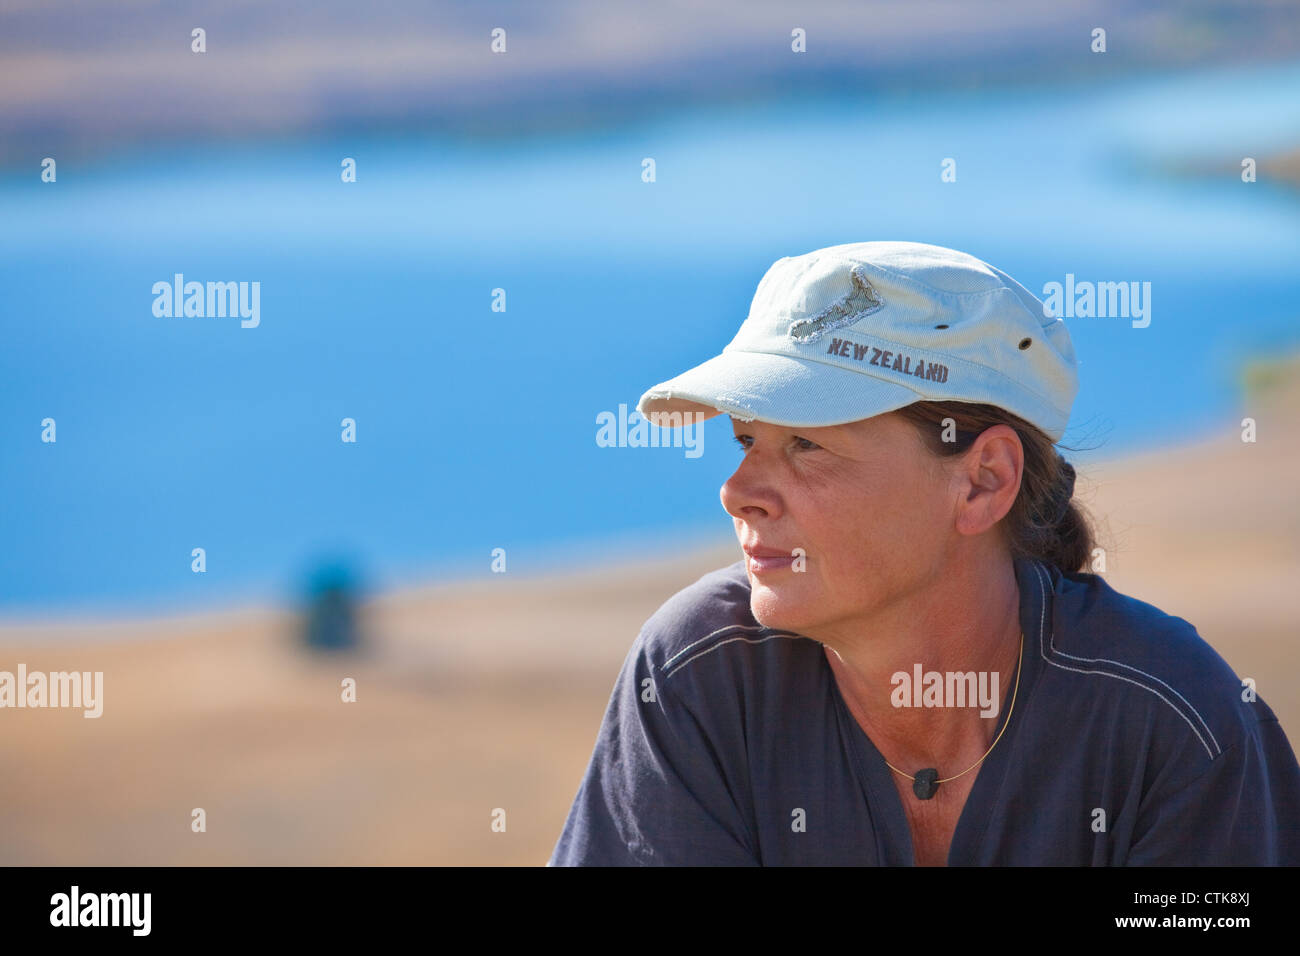 woman with Newzealand cap - Stock Image